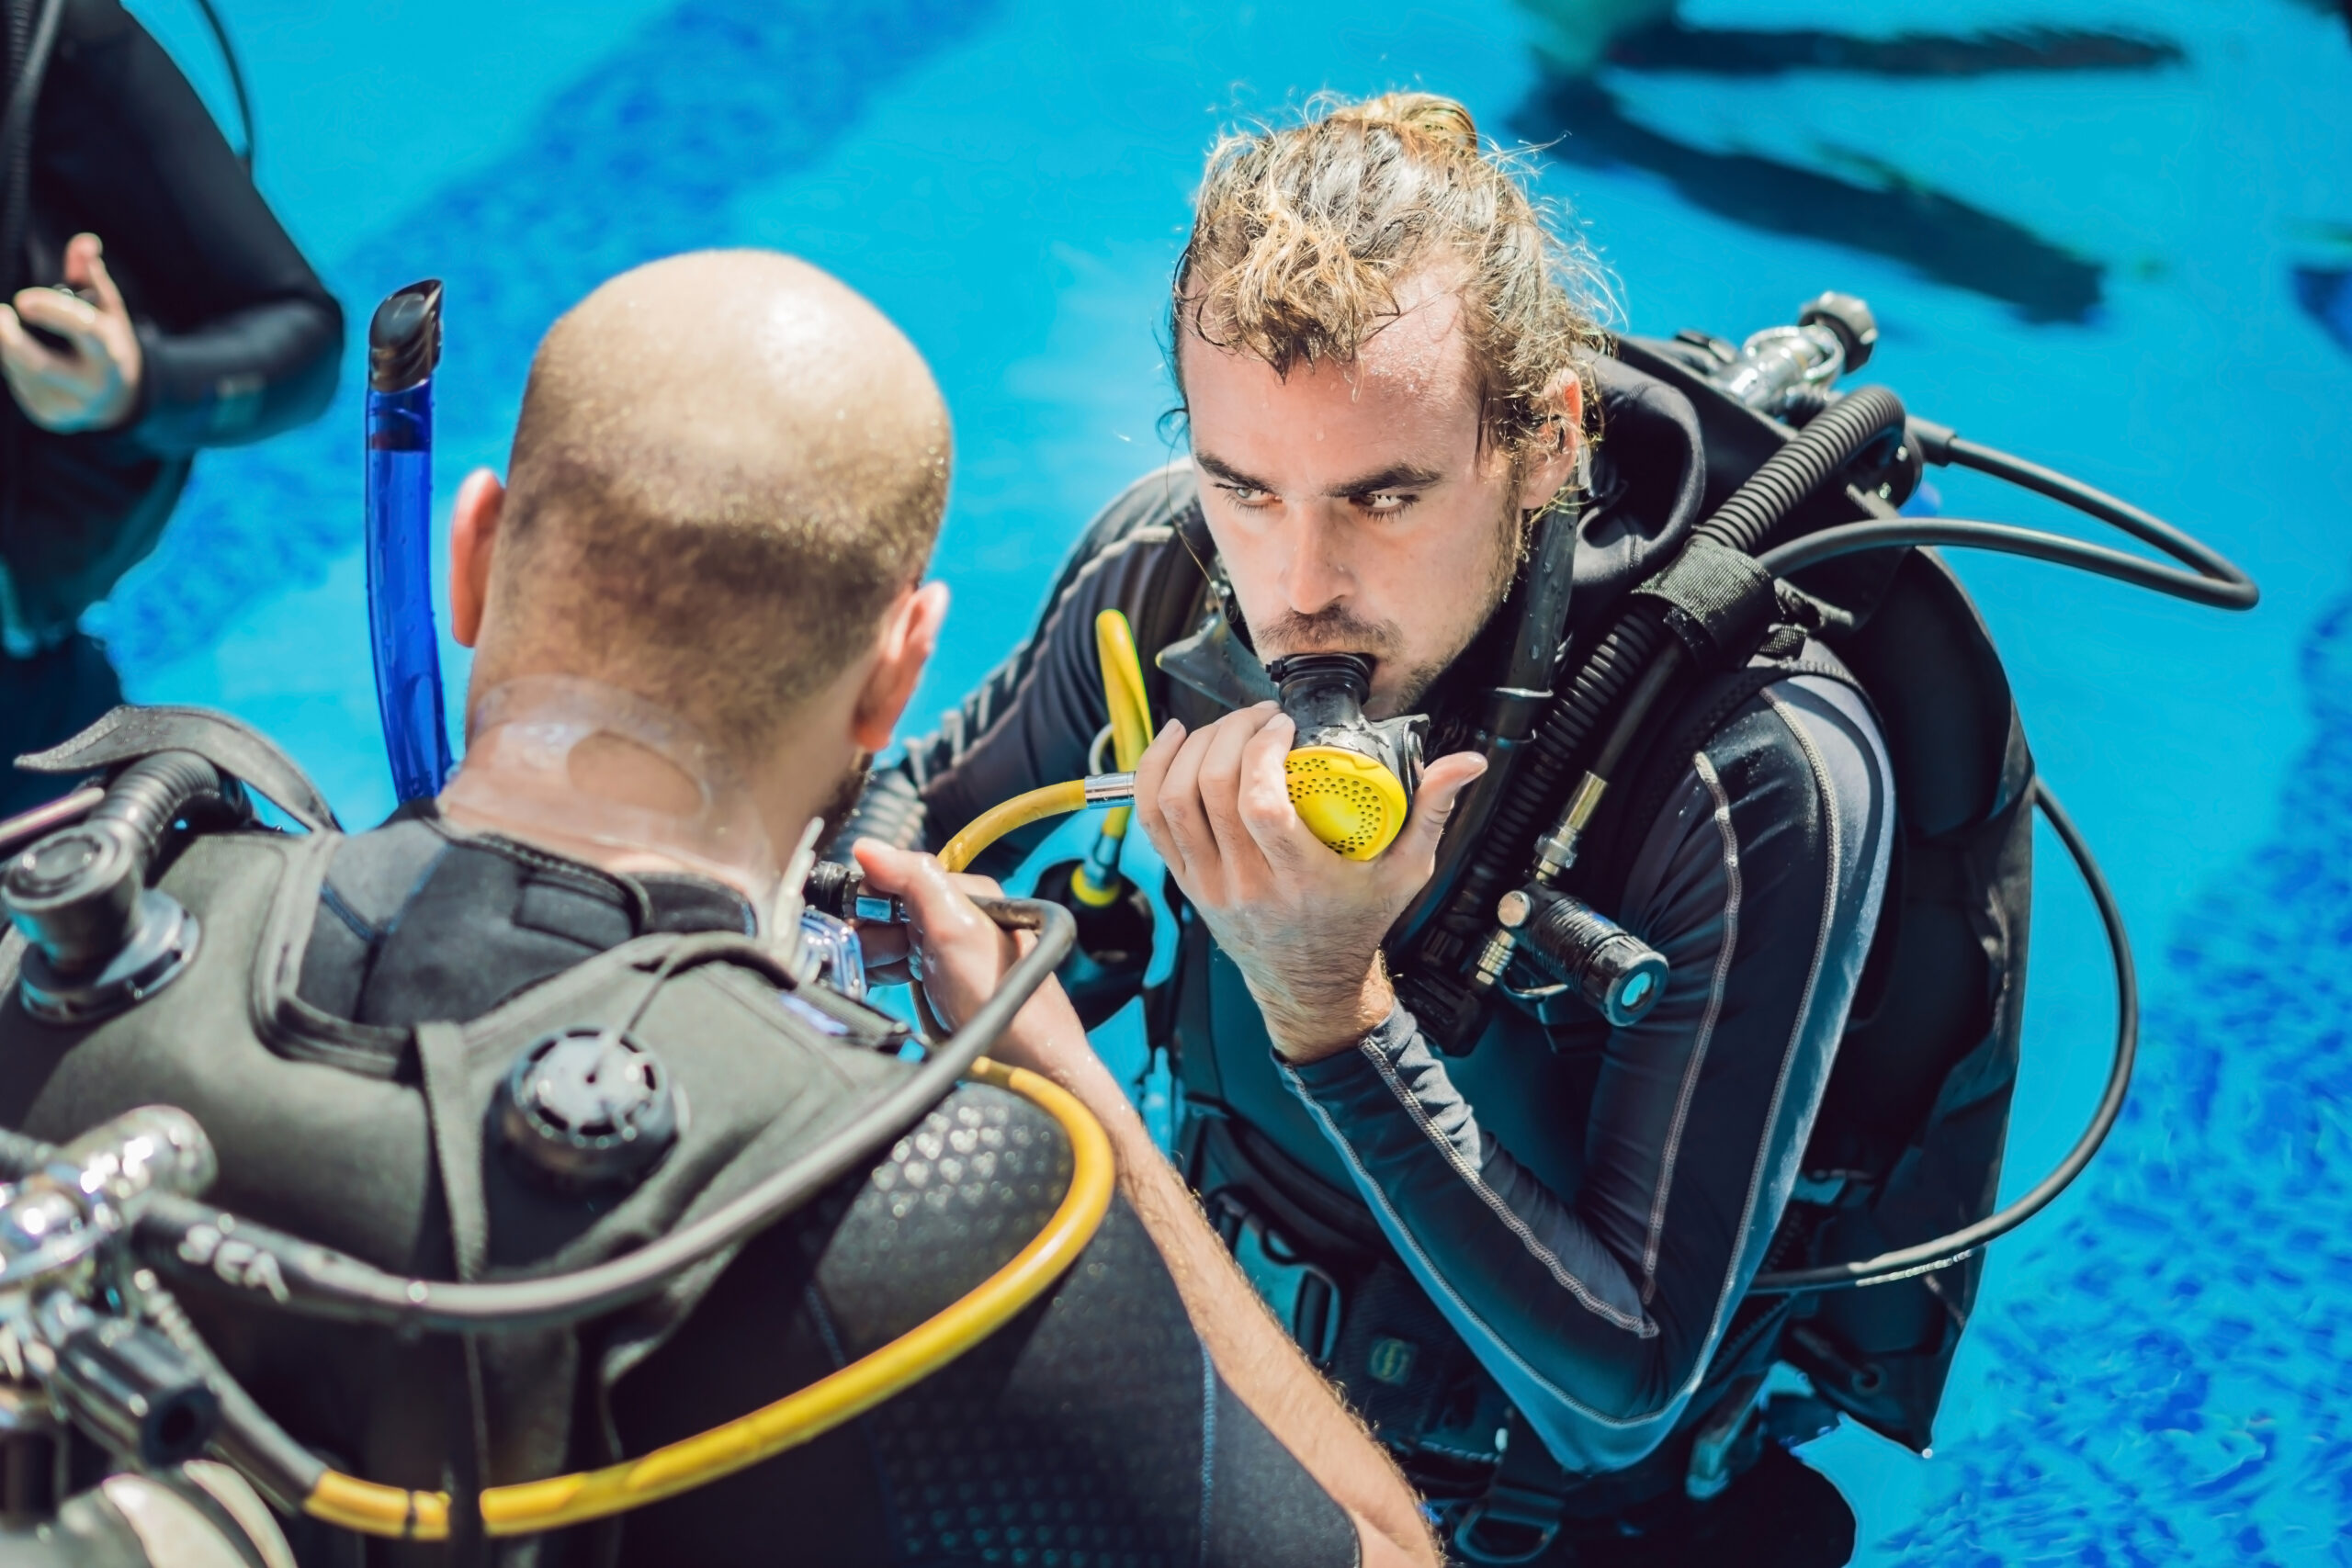 How long does it take to get a SCUBA Certification